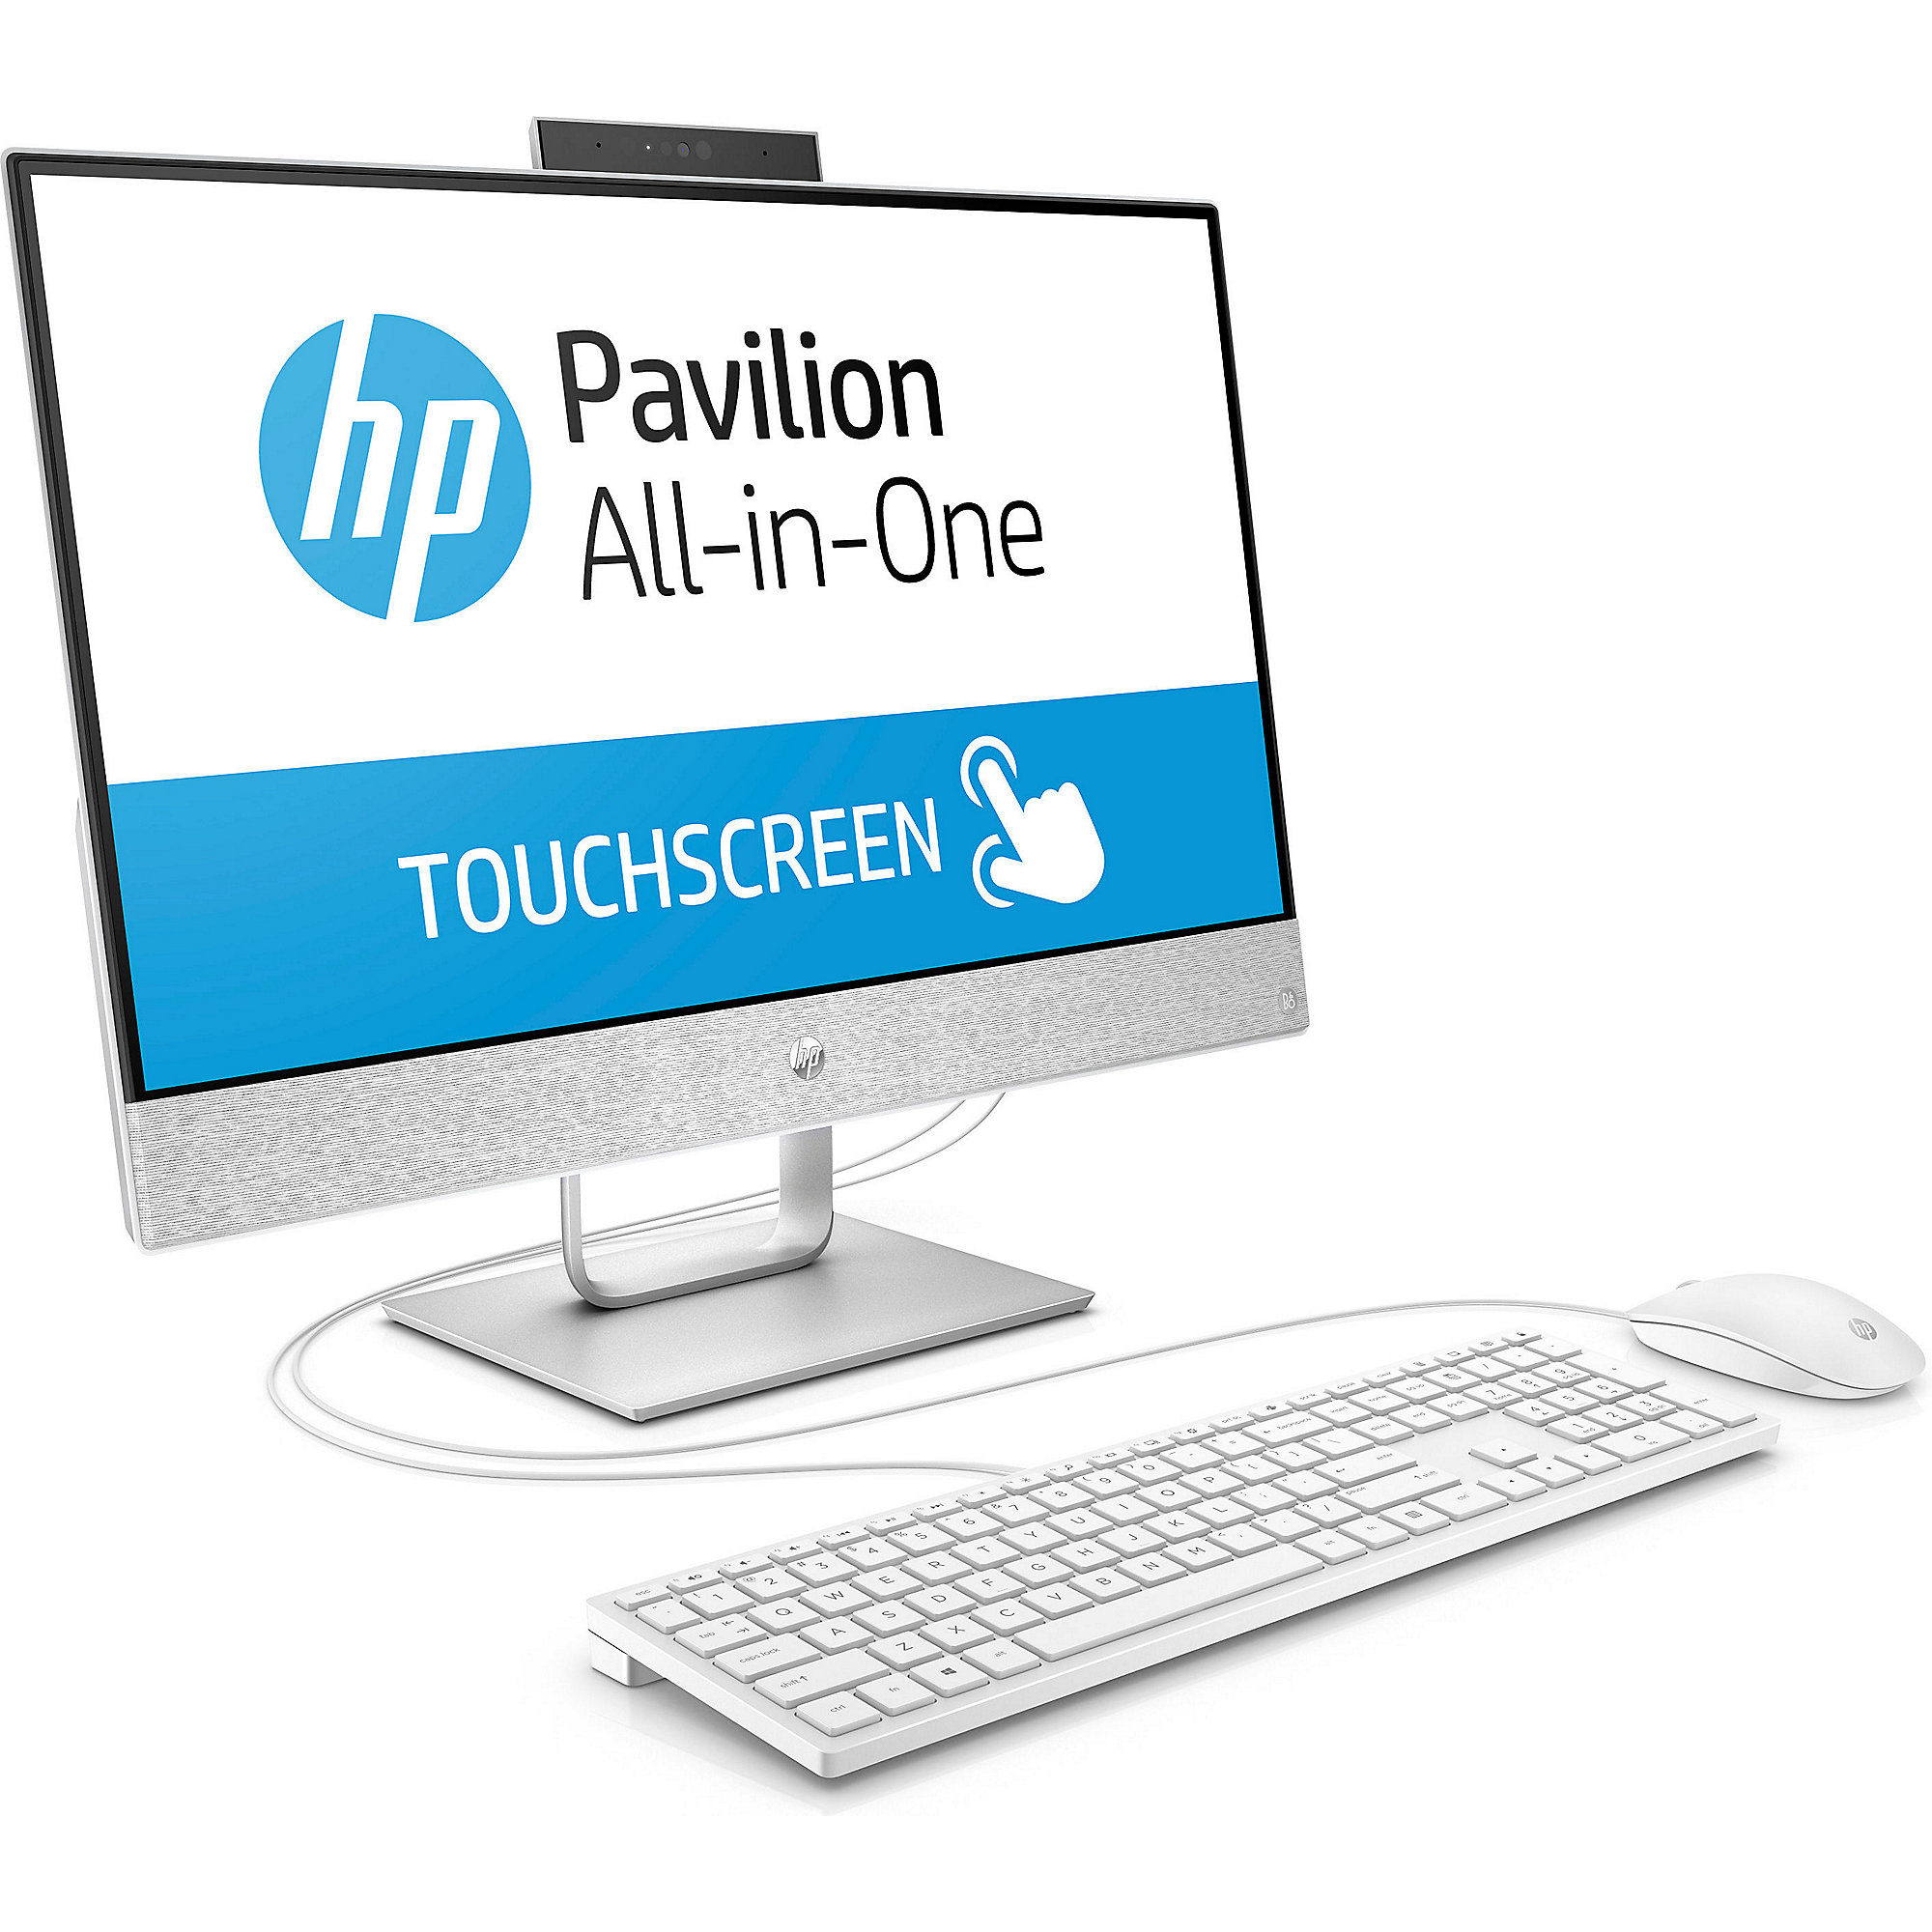 HP Pavilion 24-x050ng AiO i5-7400T FHD Touch 16GB/1TB 128GB SSD W10